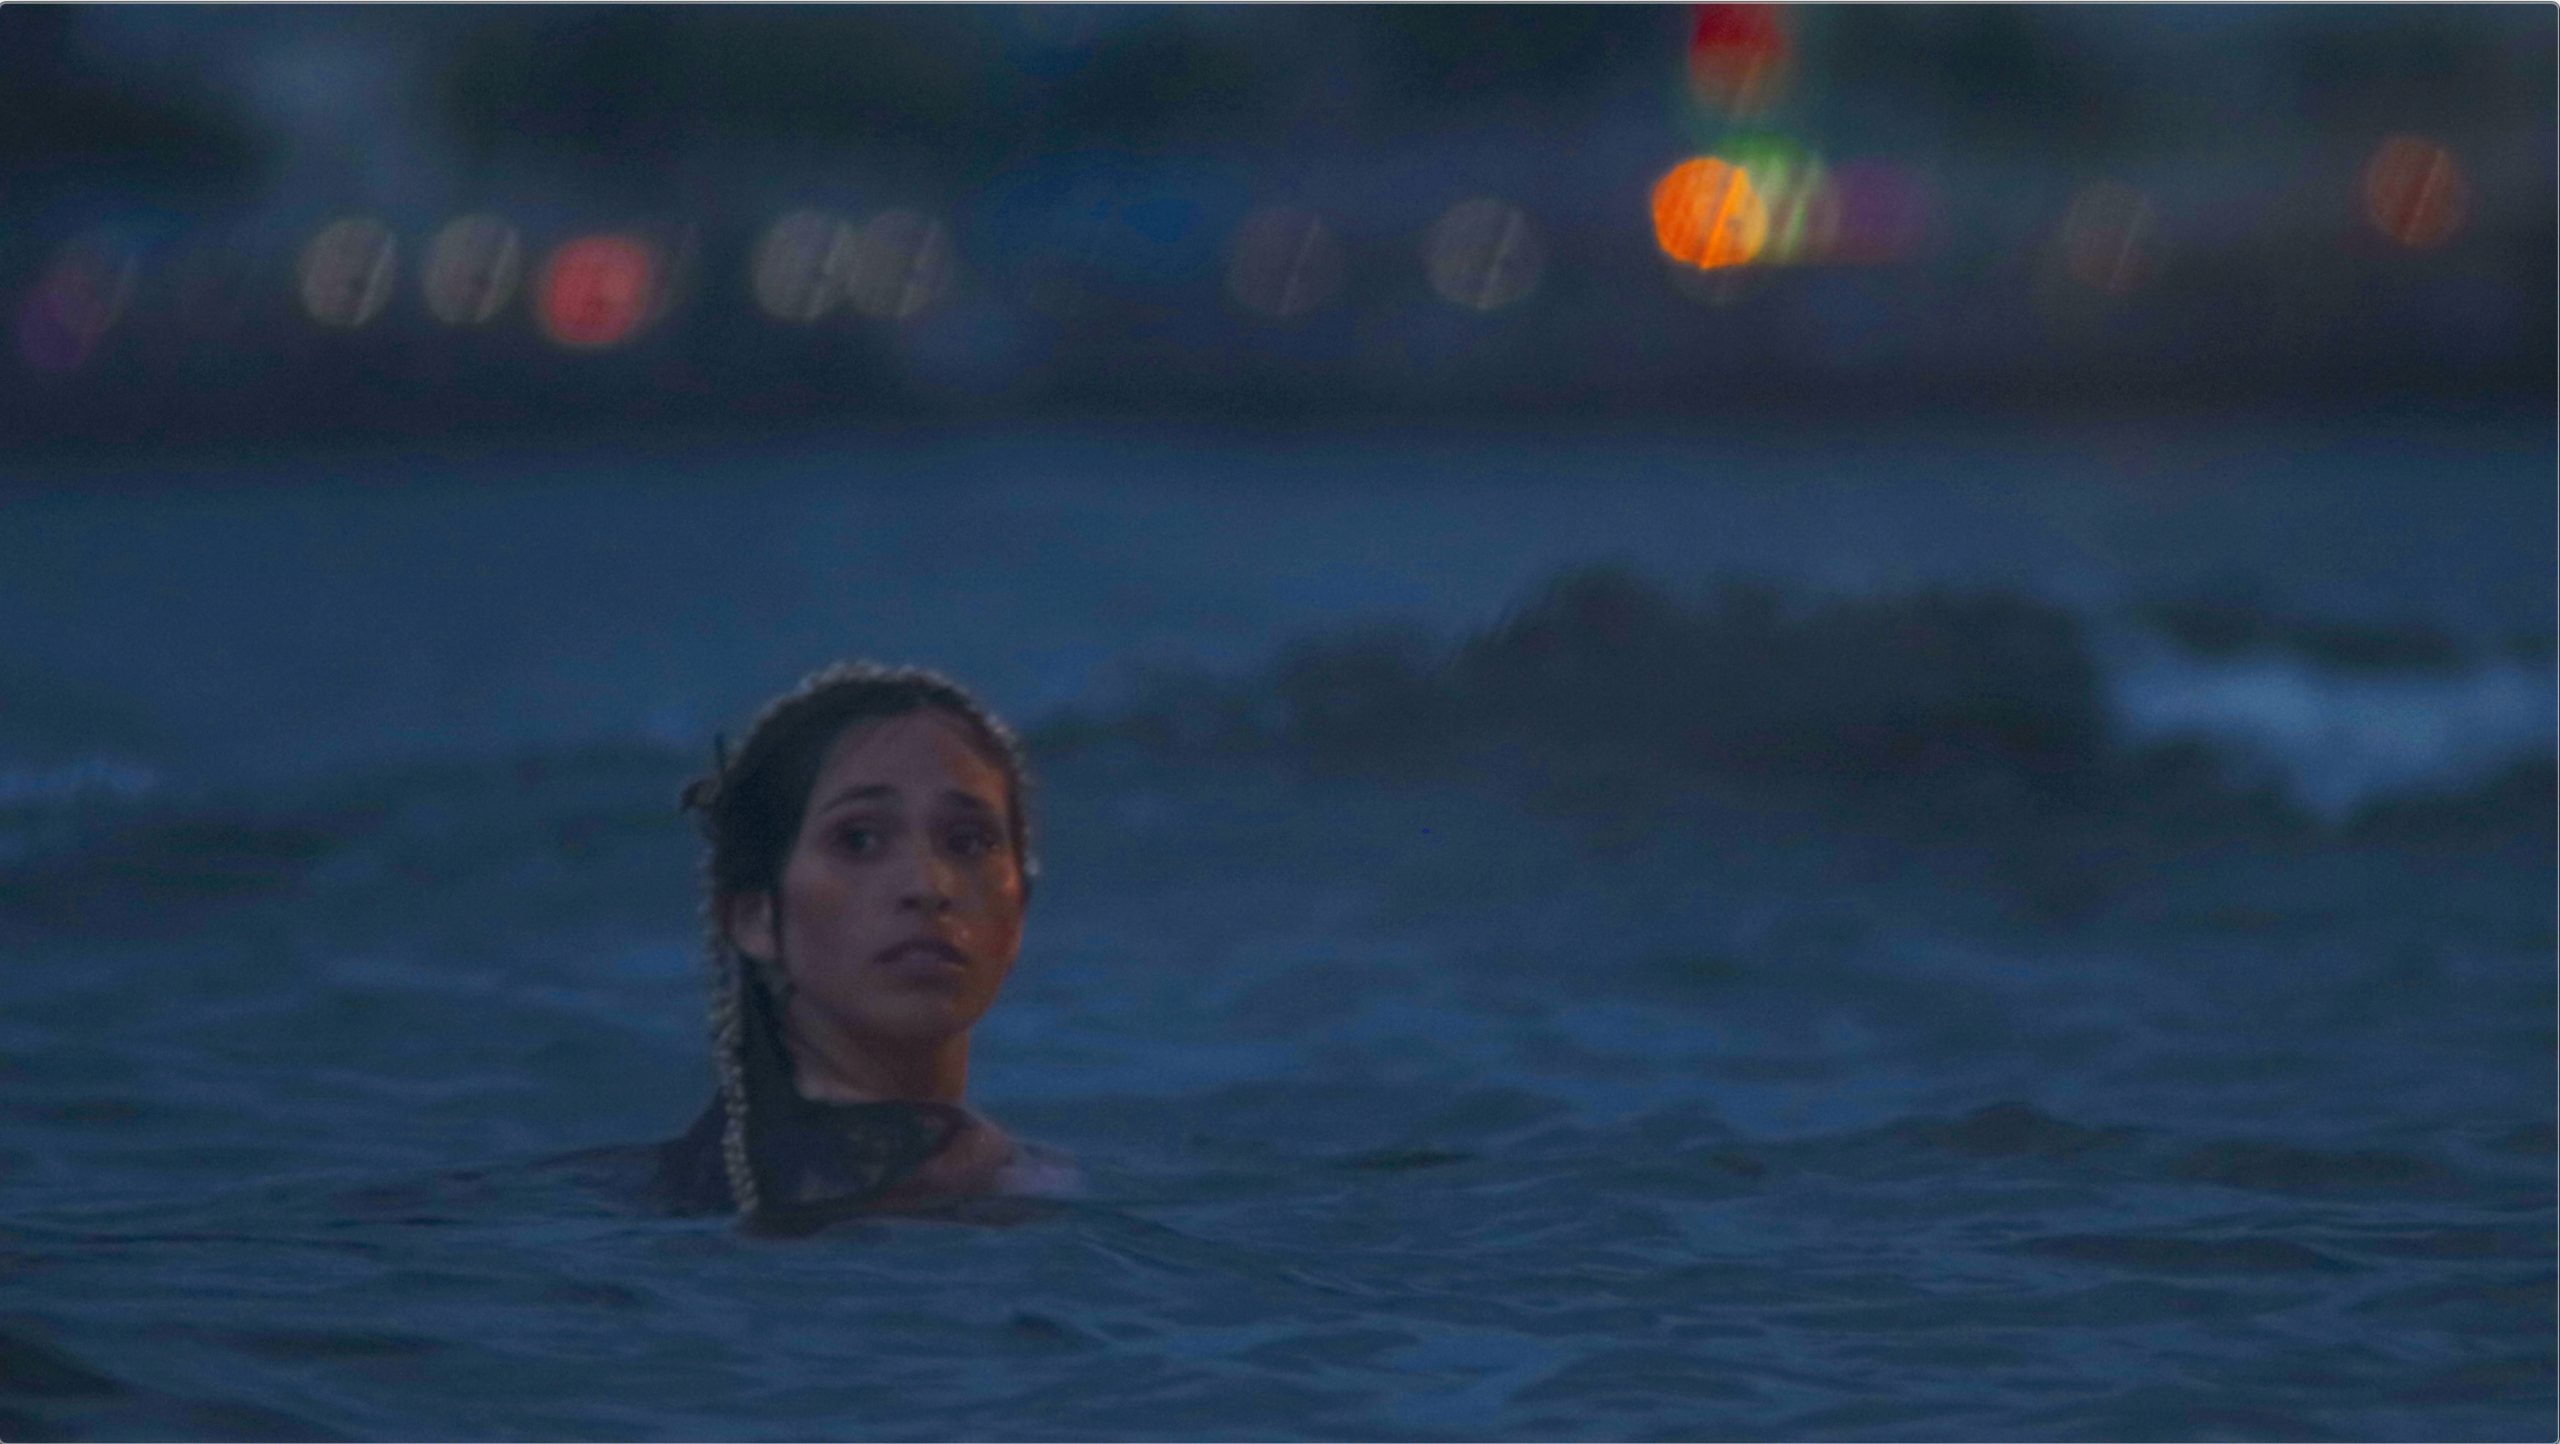 Woman with head just above ocean water, looks back with worried expression.